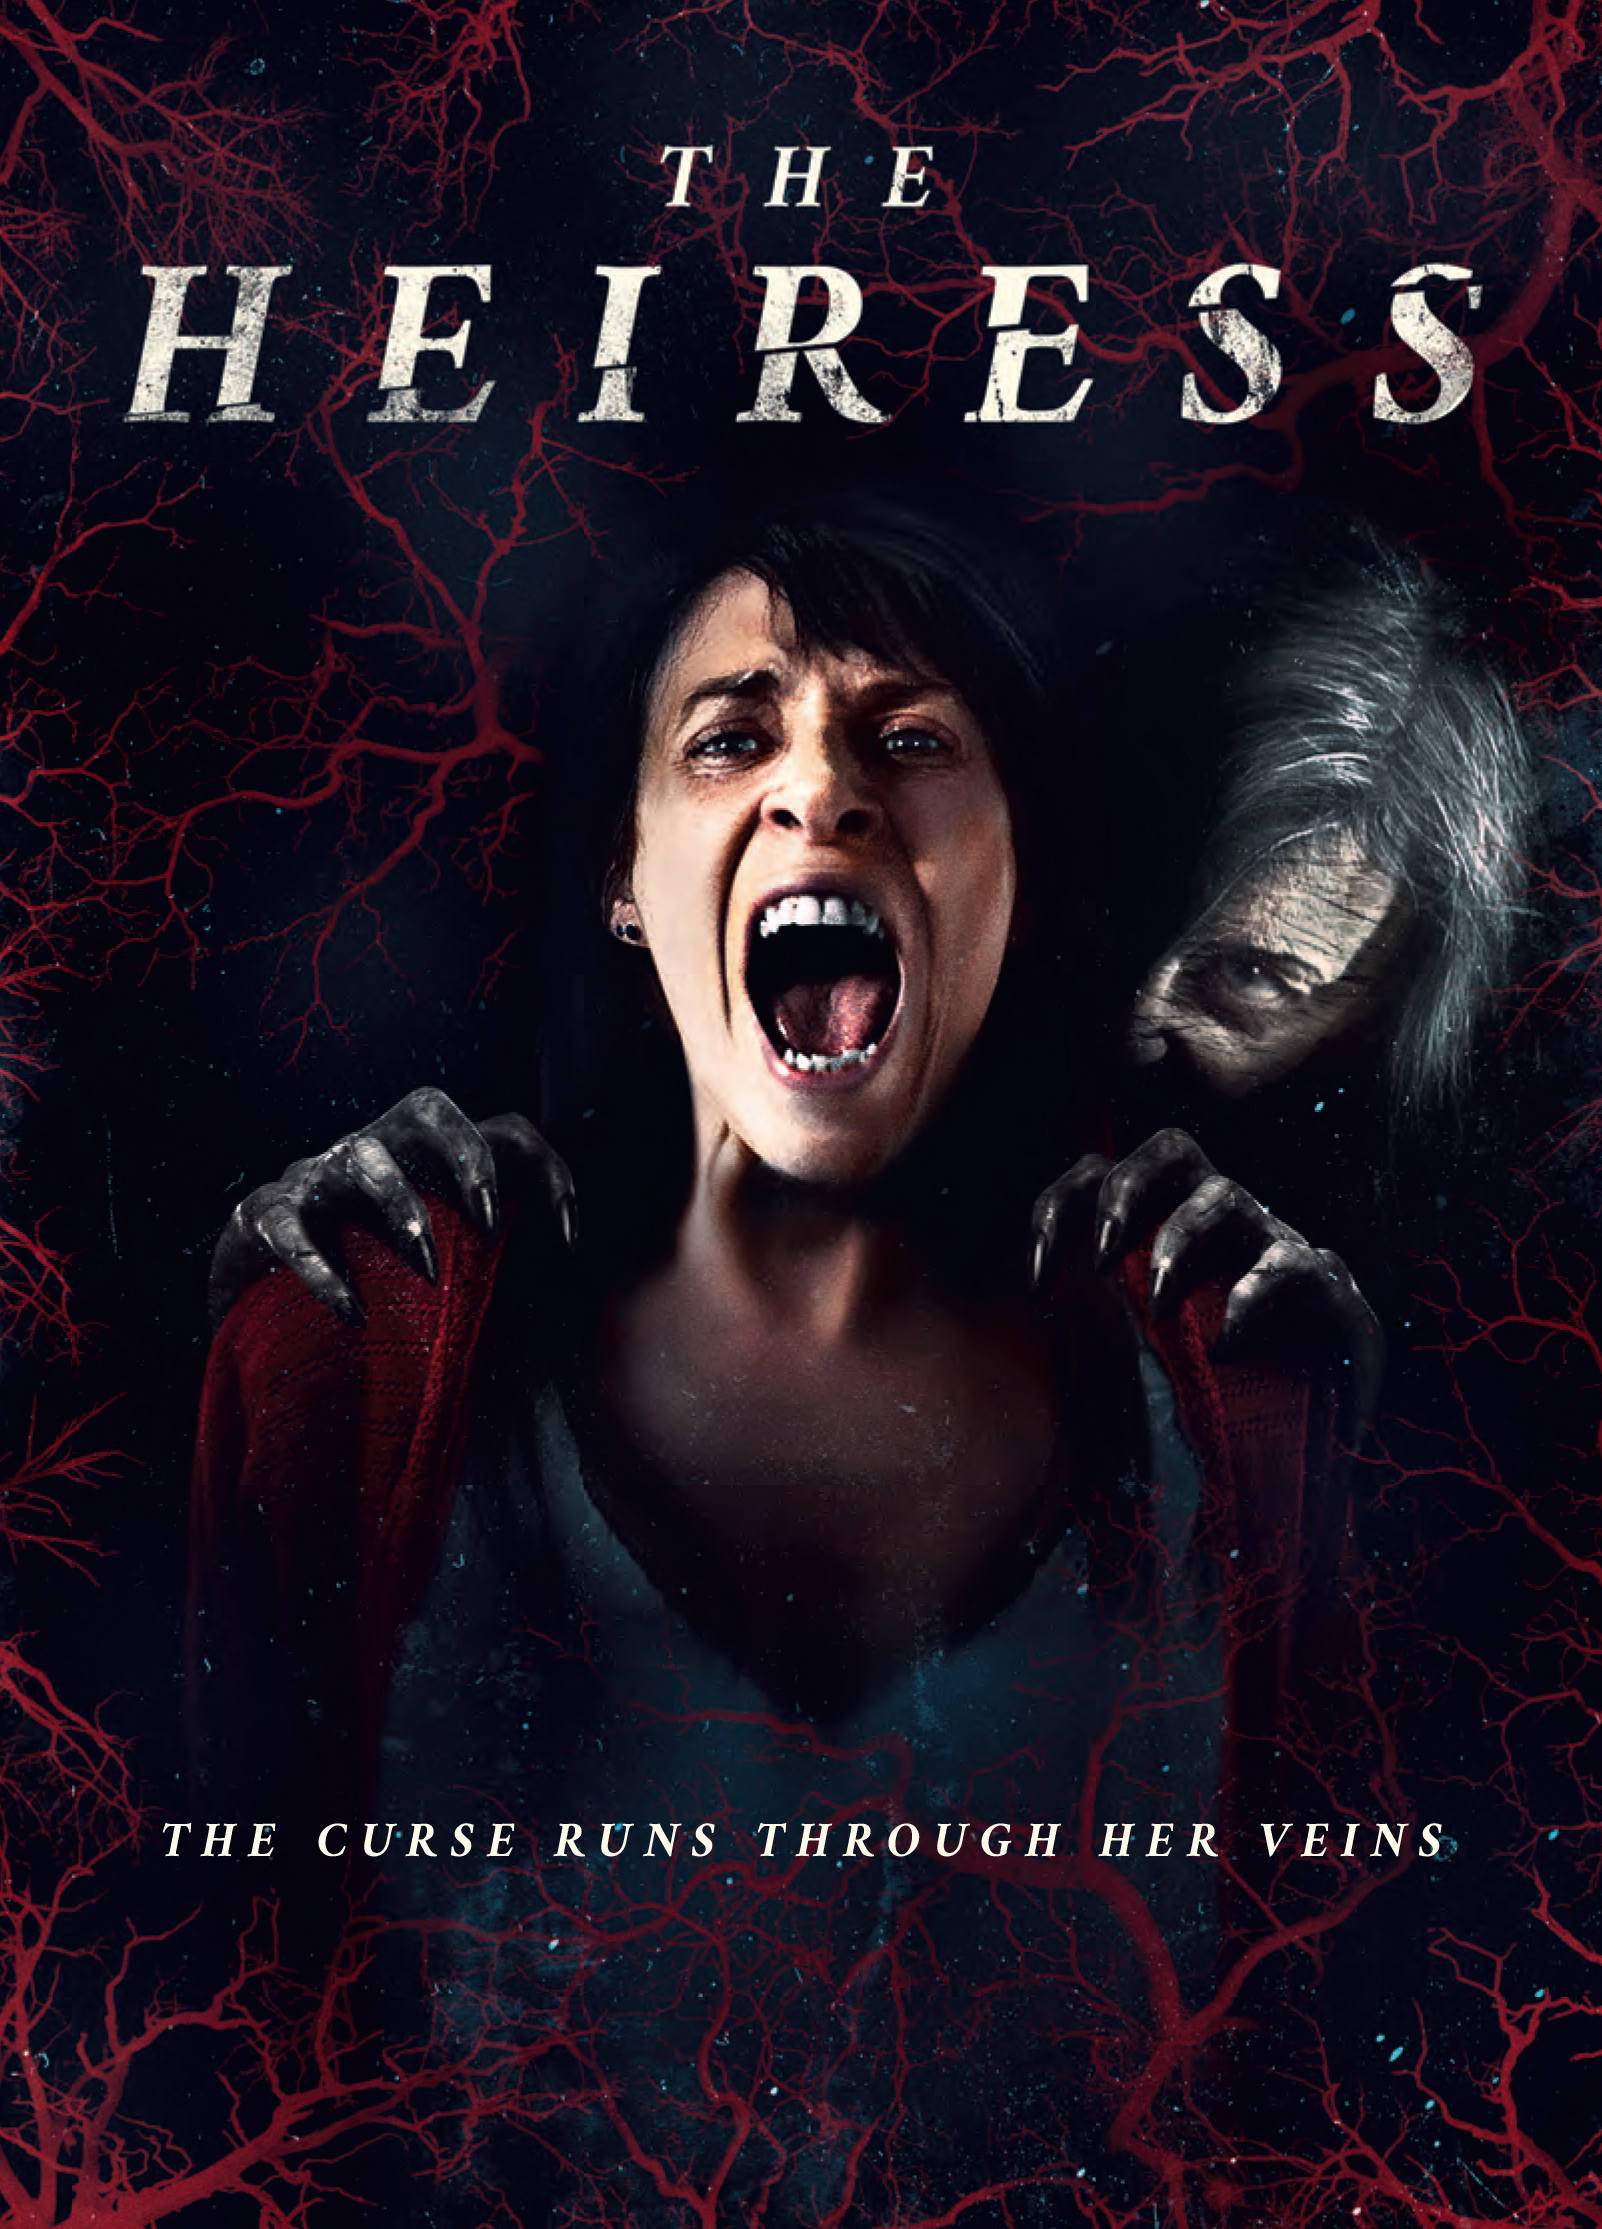 The Heiress (2021) WebRip 720p Dual Audio [Hindi (Voice Over) Dubbed + English] [Full Movie]